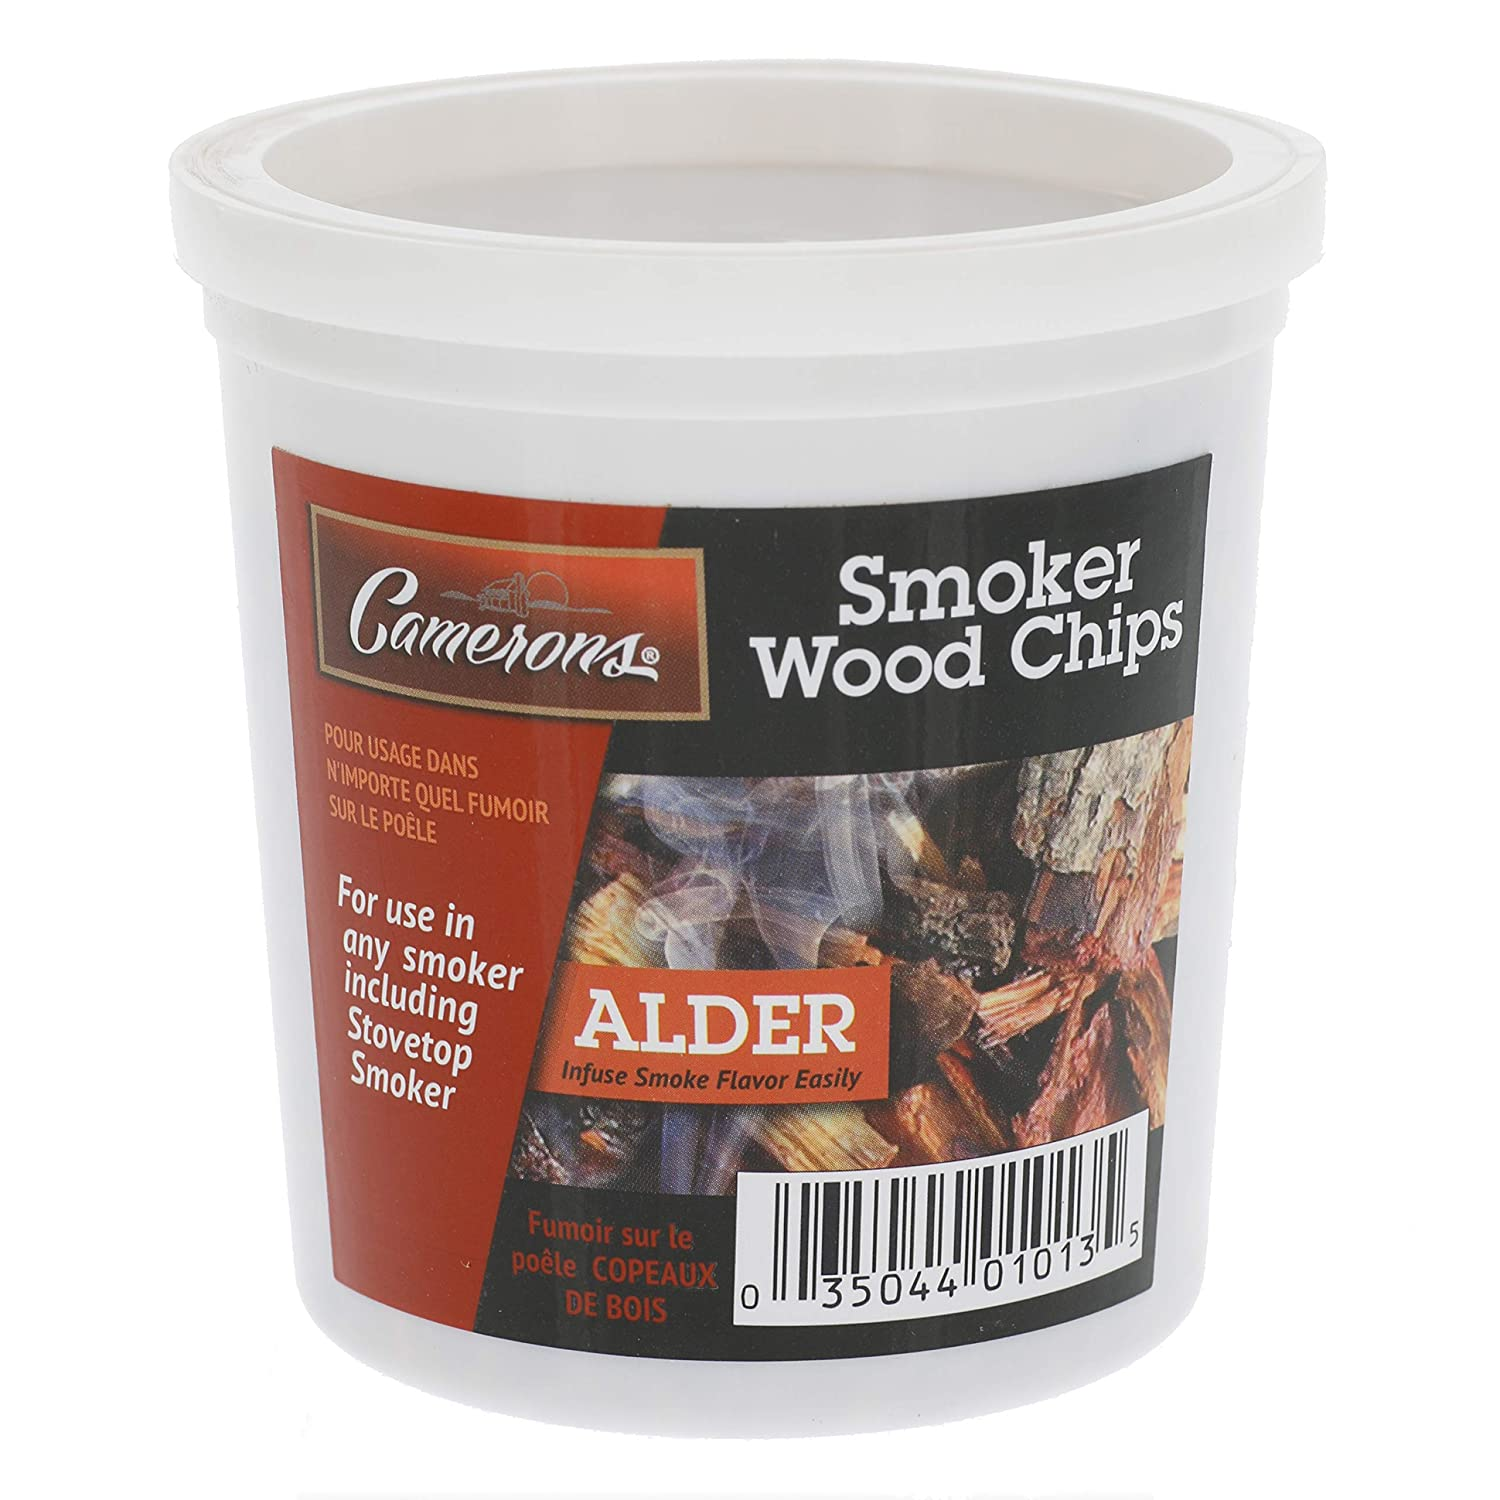 Wood Smoking Chips - 1 Pint of Alder Wood Chips (Fine) for Smokers - 100% Natural Camerons Products STDP-C01185